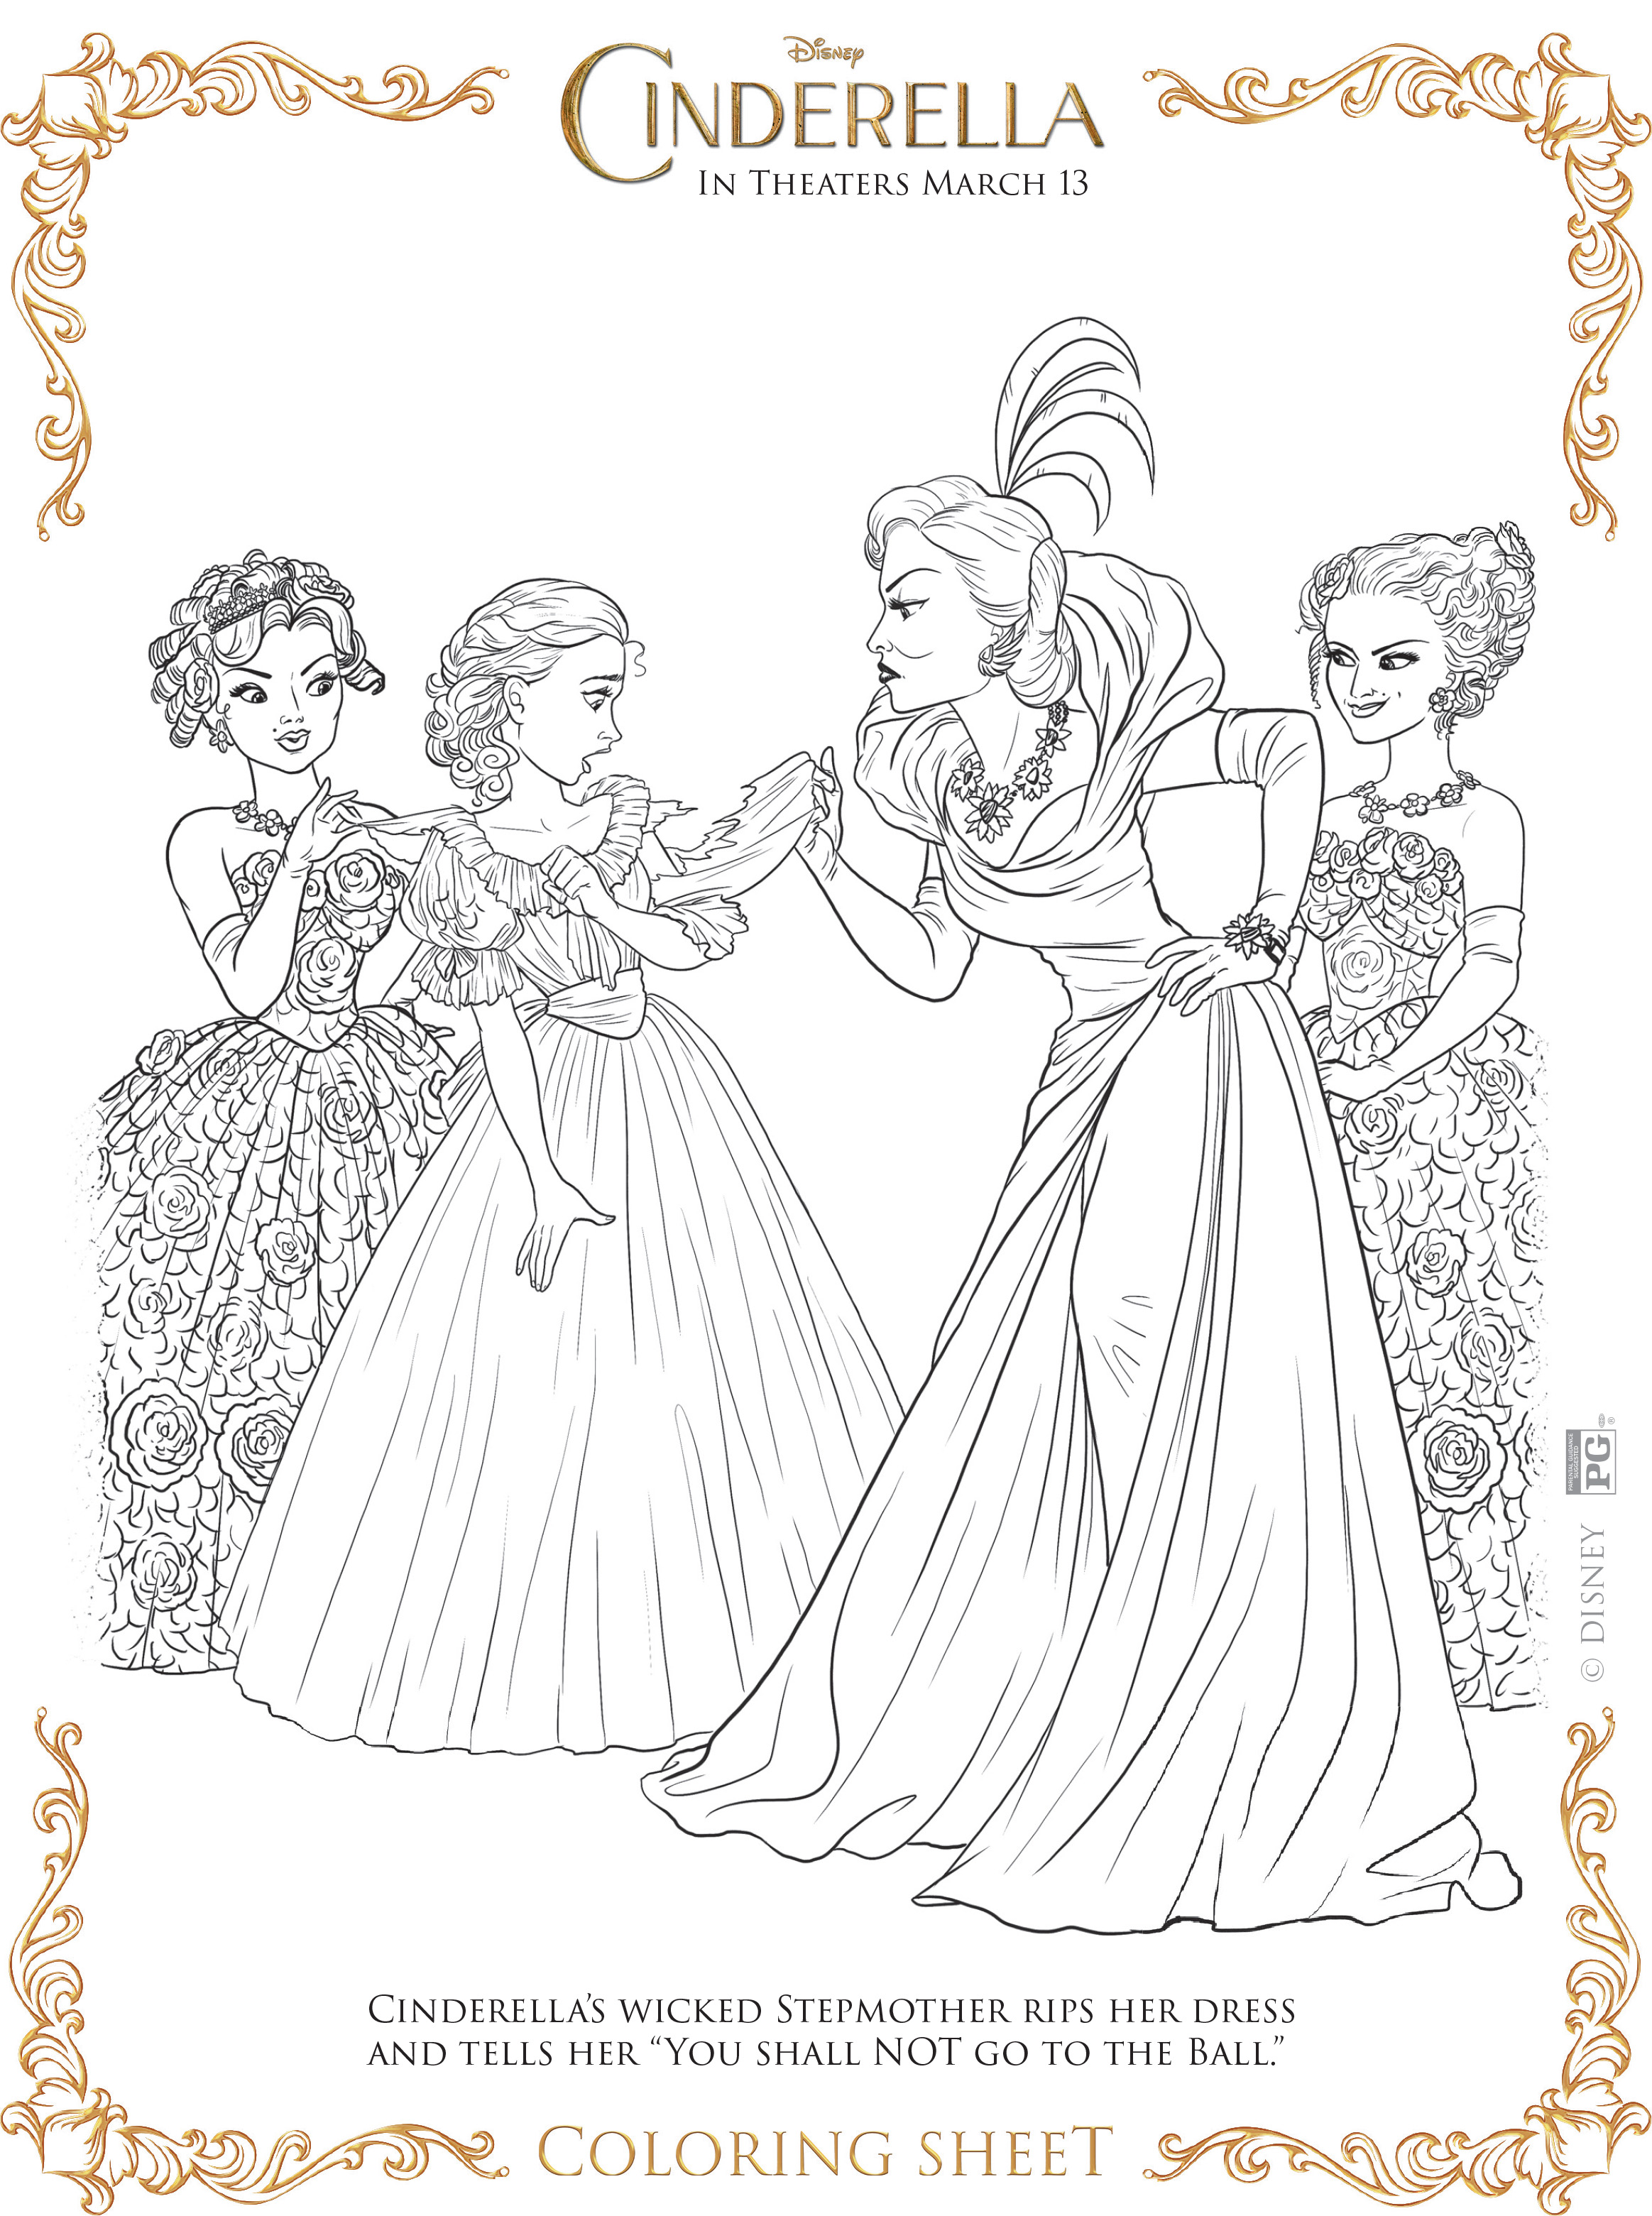 Cinderella Coloring Pages and Activity Sheets - Almost Supermom